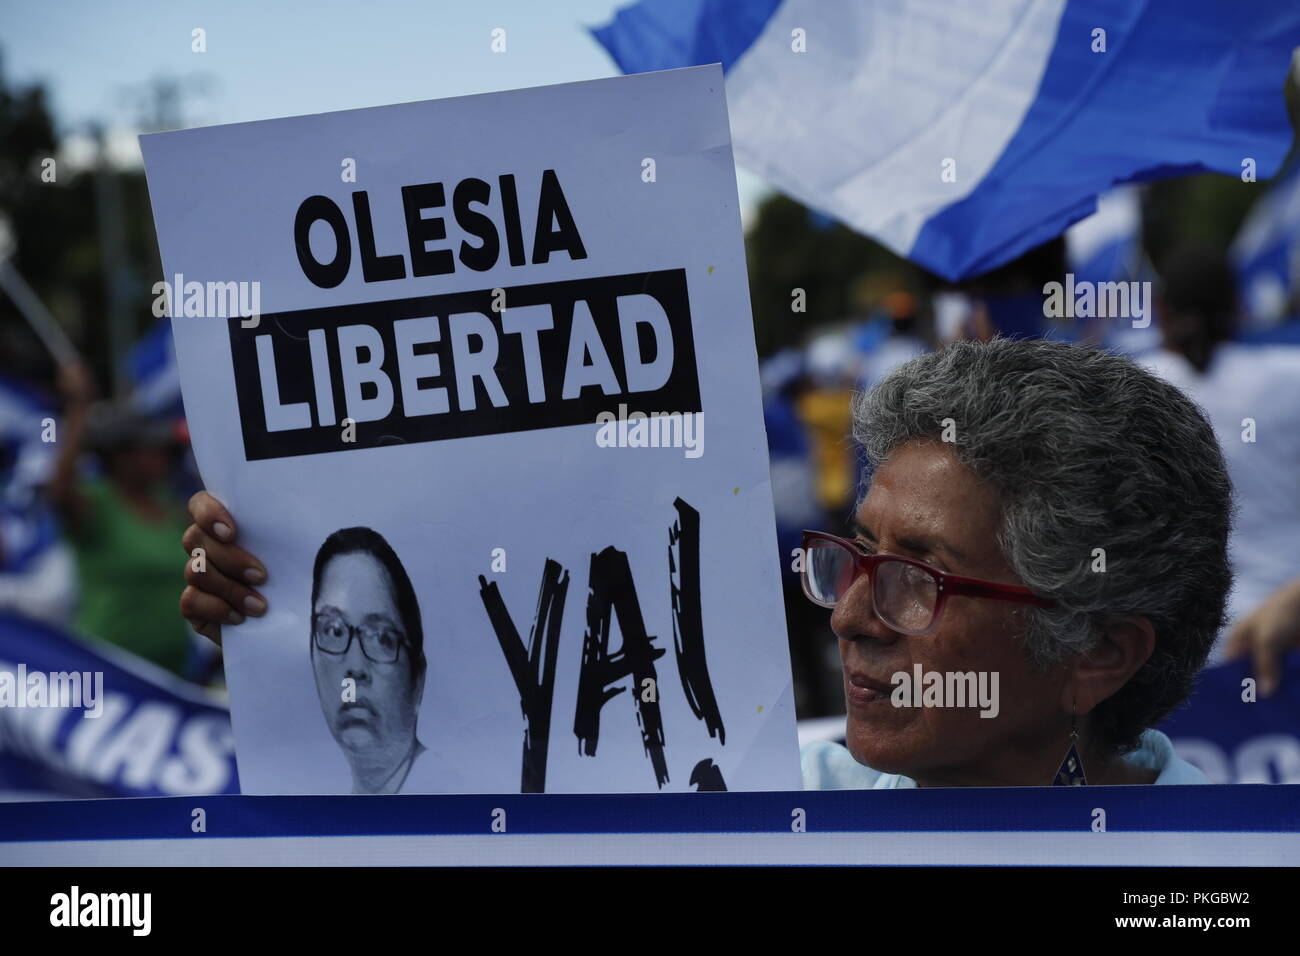 Managua, Nicaragua. 09th Sep, 2018. Opposition protestors participate in the March of the Hats to demand the freedom of political prisoners, in Managua, Nicaragua, 13 September 2018. Credit: Jorge Torres/EFE/Alamy Live News Stock Photo